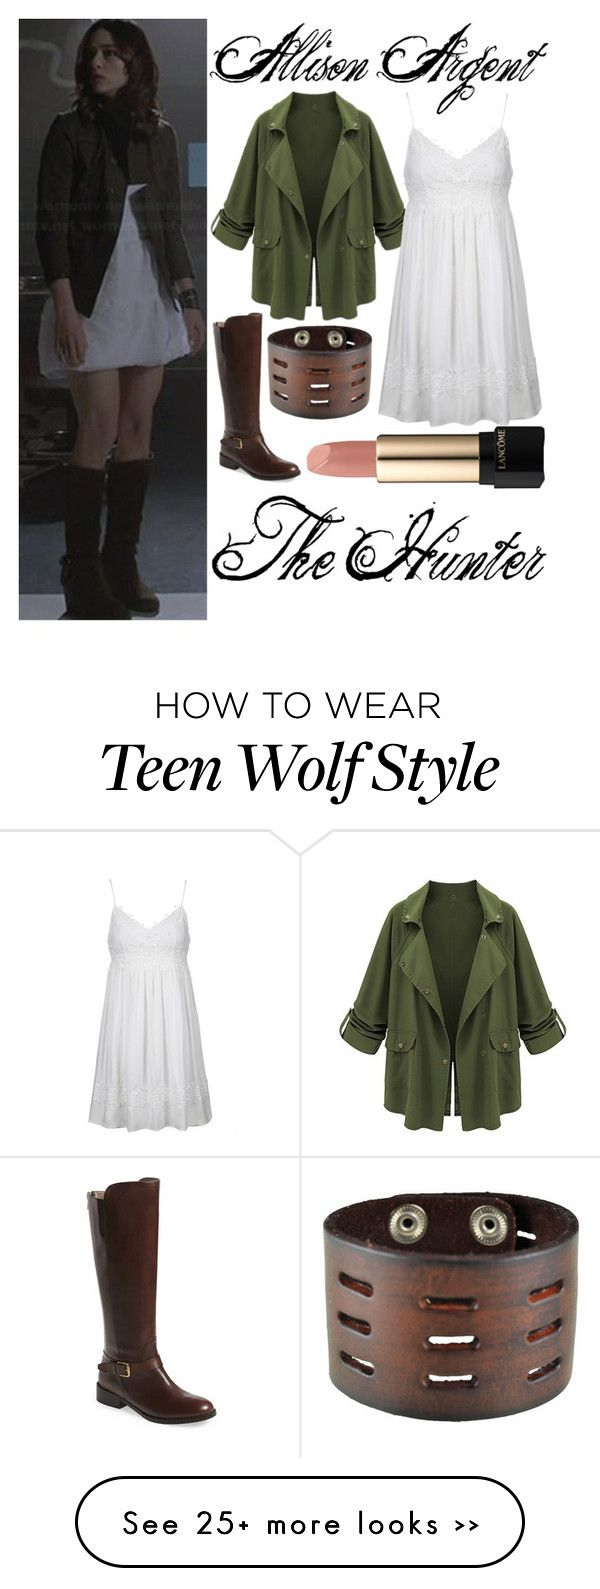 """Allison Argent"" by modaamante on Polyvore"